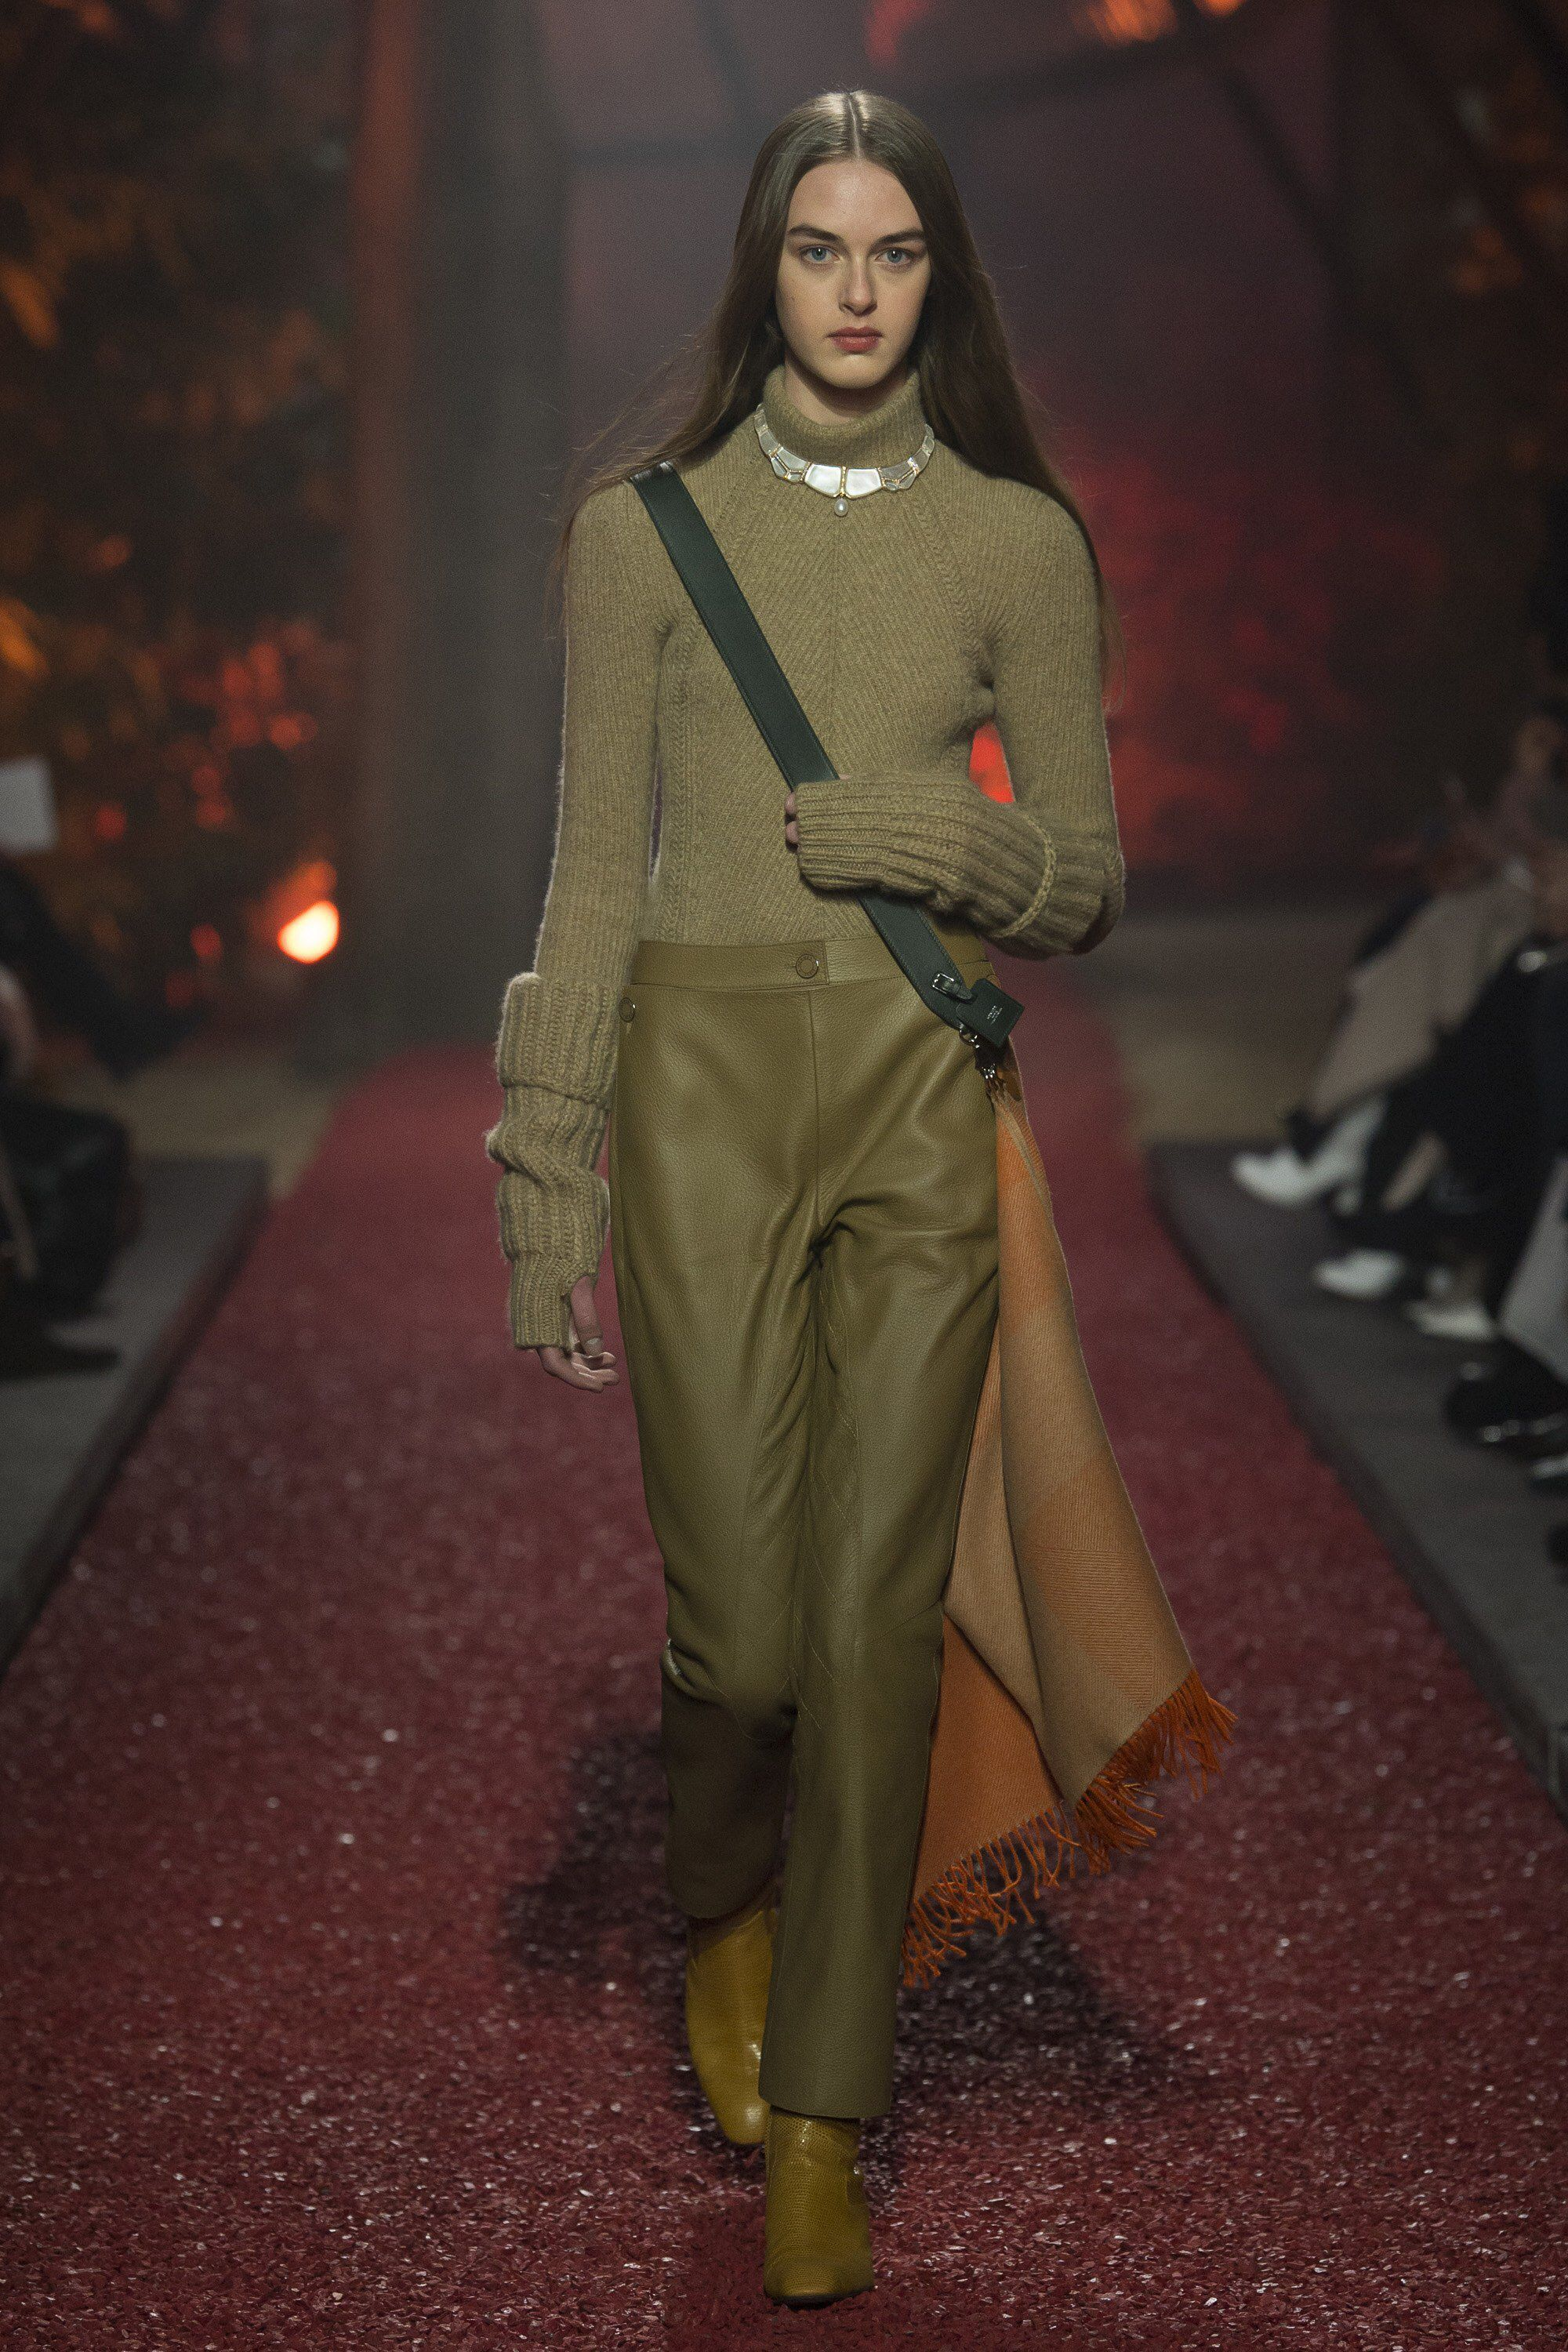 acb80407a5 Hermès Fall 2018 Ready-to-Wear Fashion Show Collection